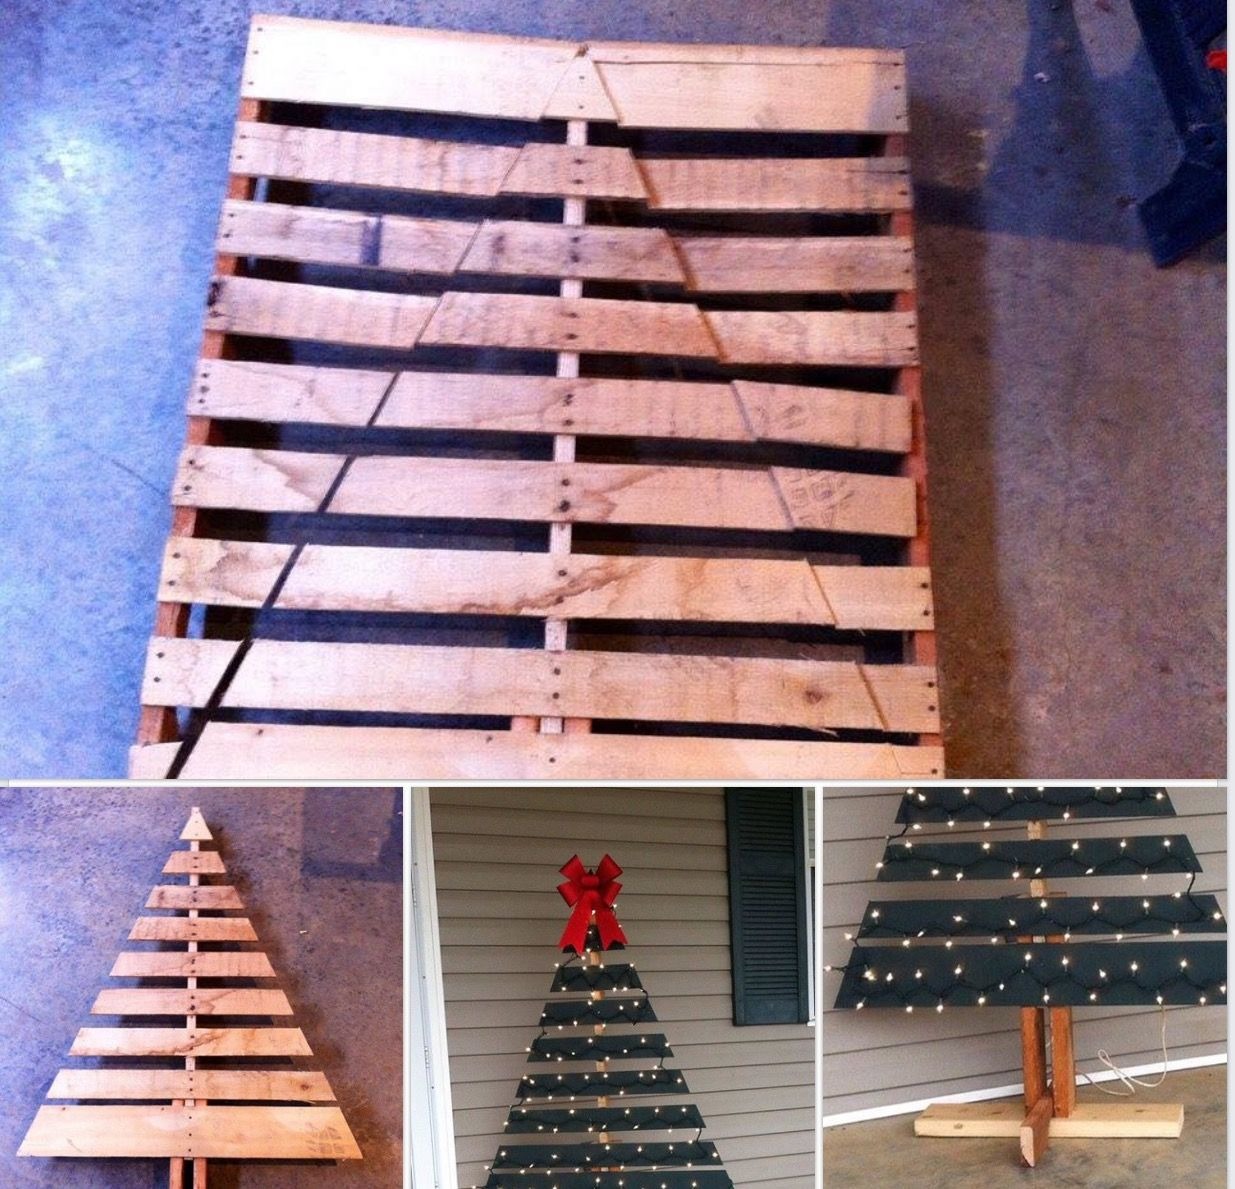 Christmas tree made from pallets pallet projects Christmas trees made out of wood